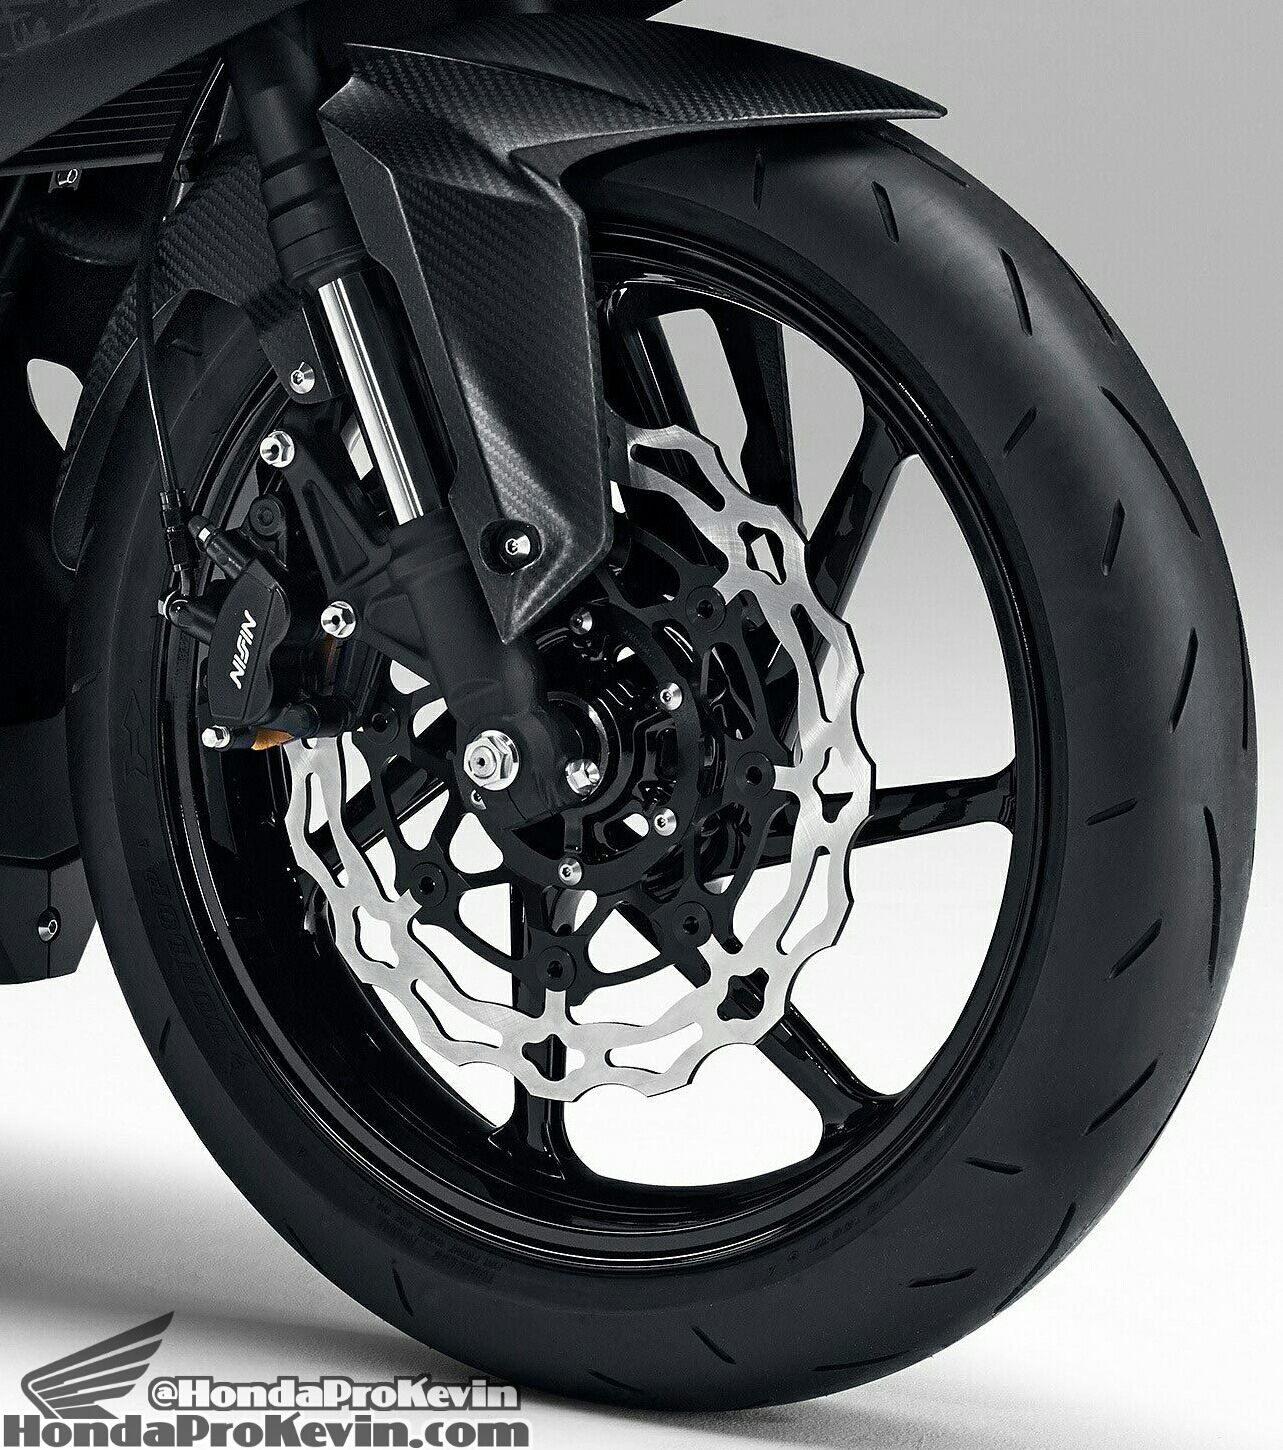 Check Out The Lights Over The: 2016 Honda Sportbike / Motorcycle